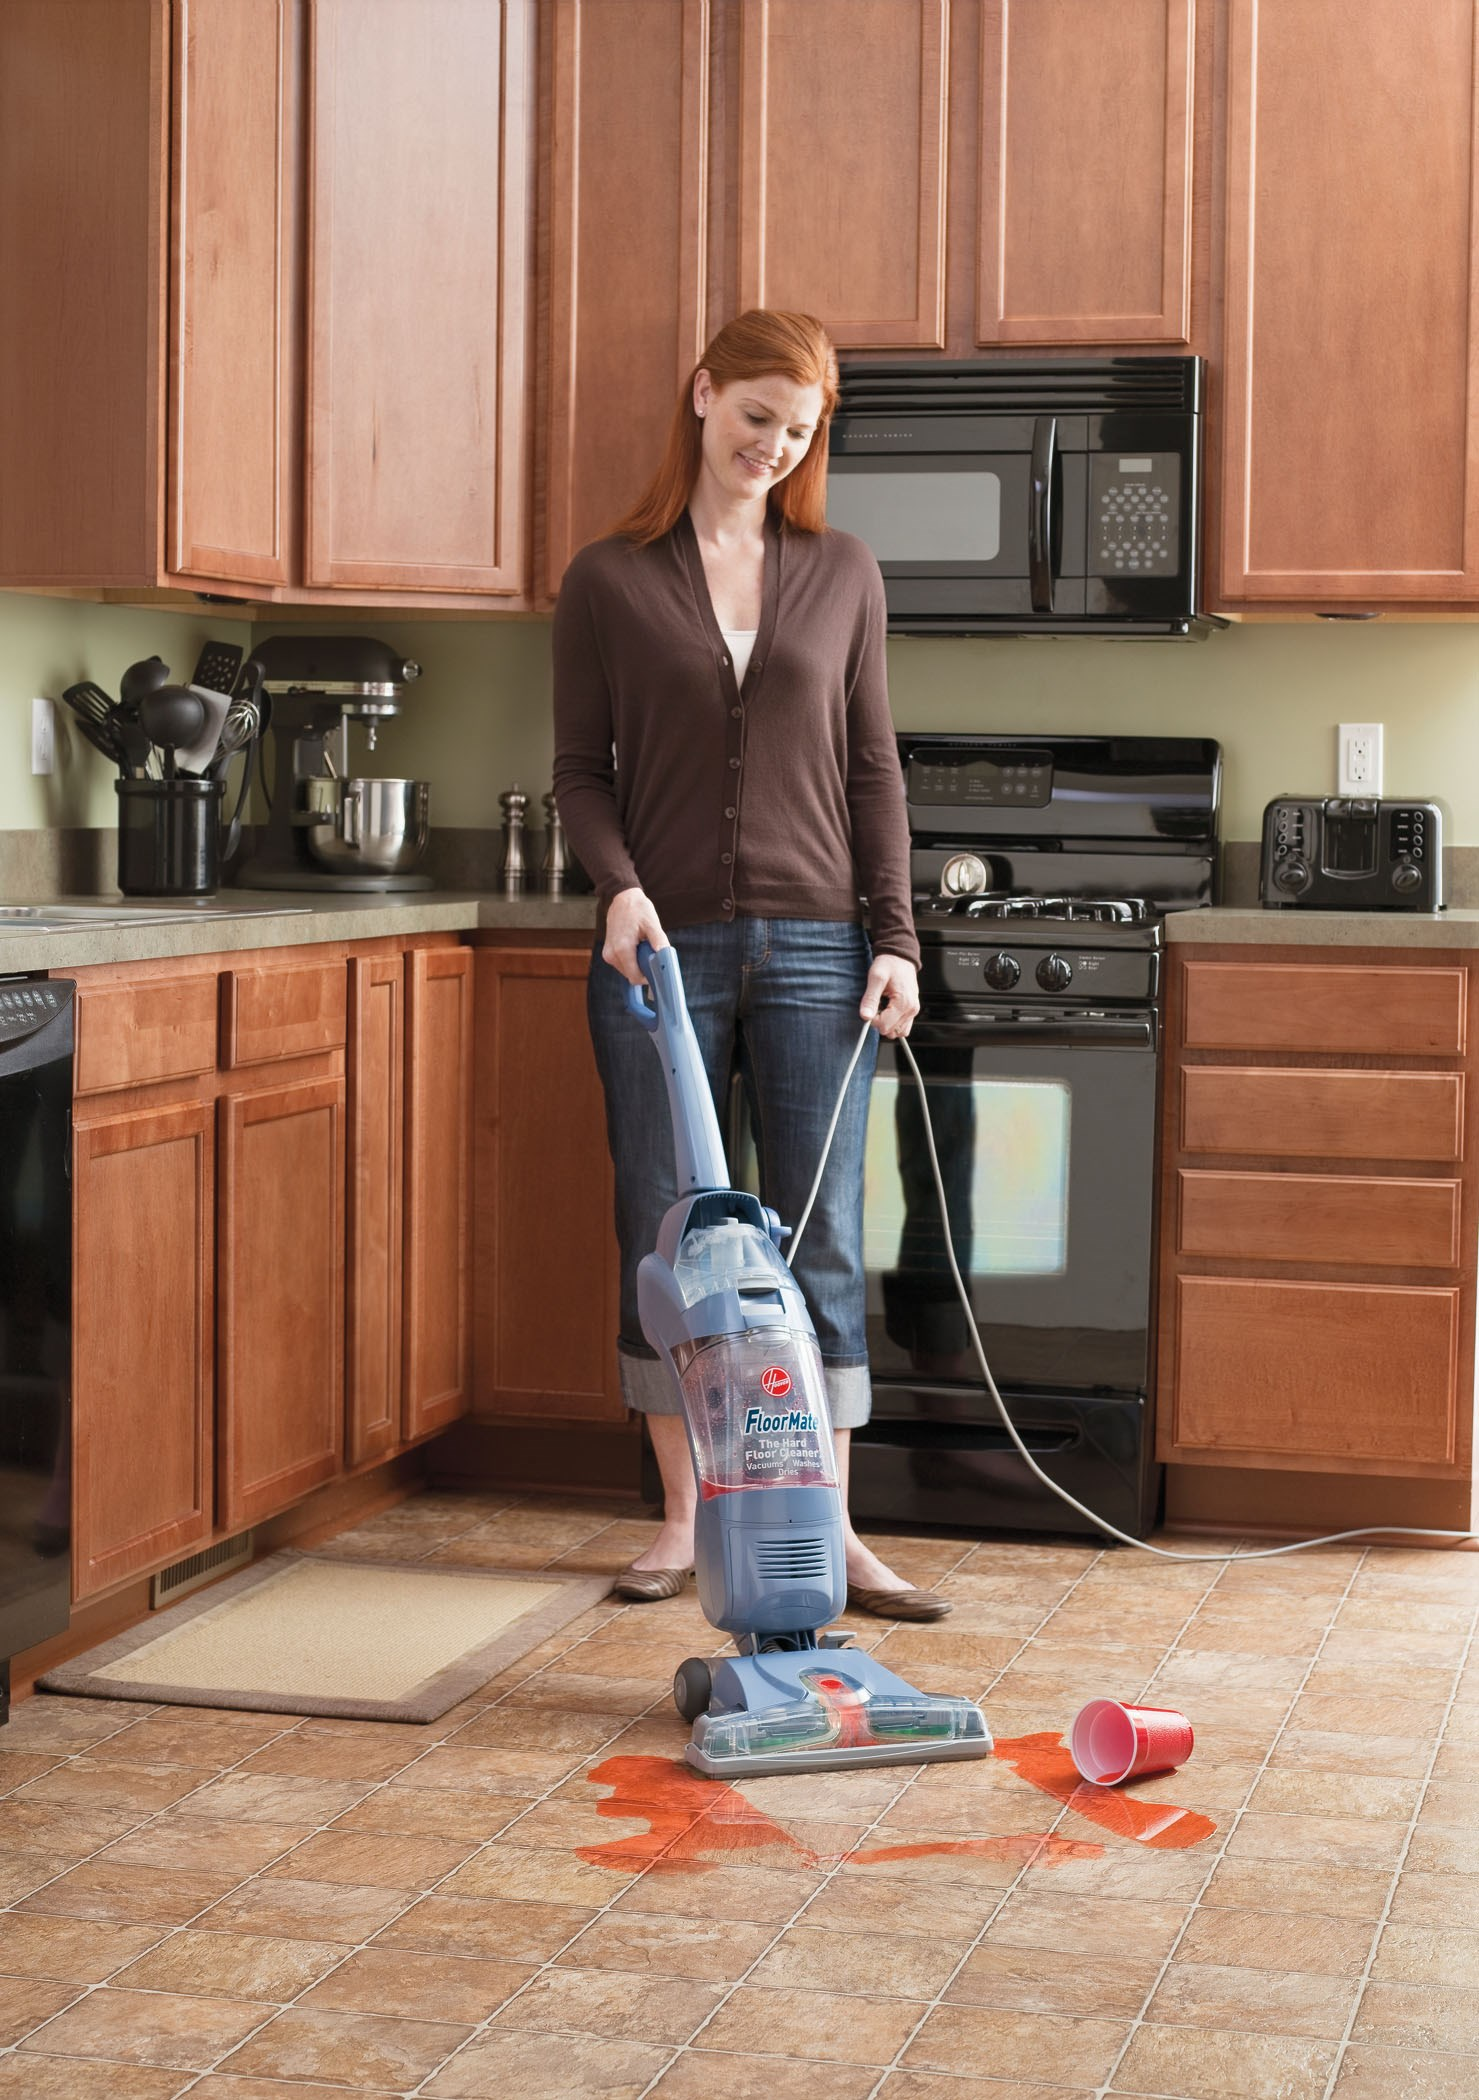 Hoover floormate hard floor cleaner walmart dailygadgetfo Images